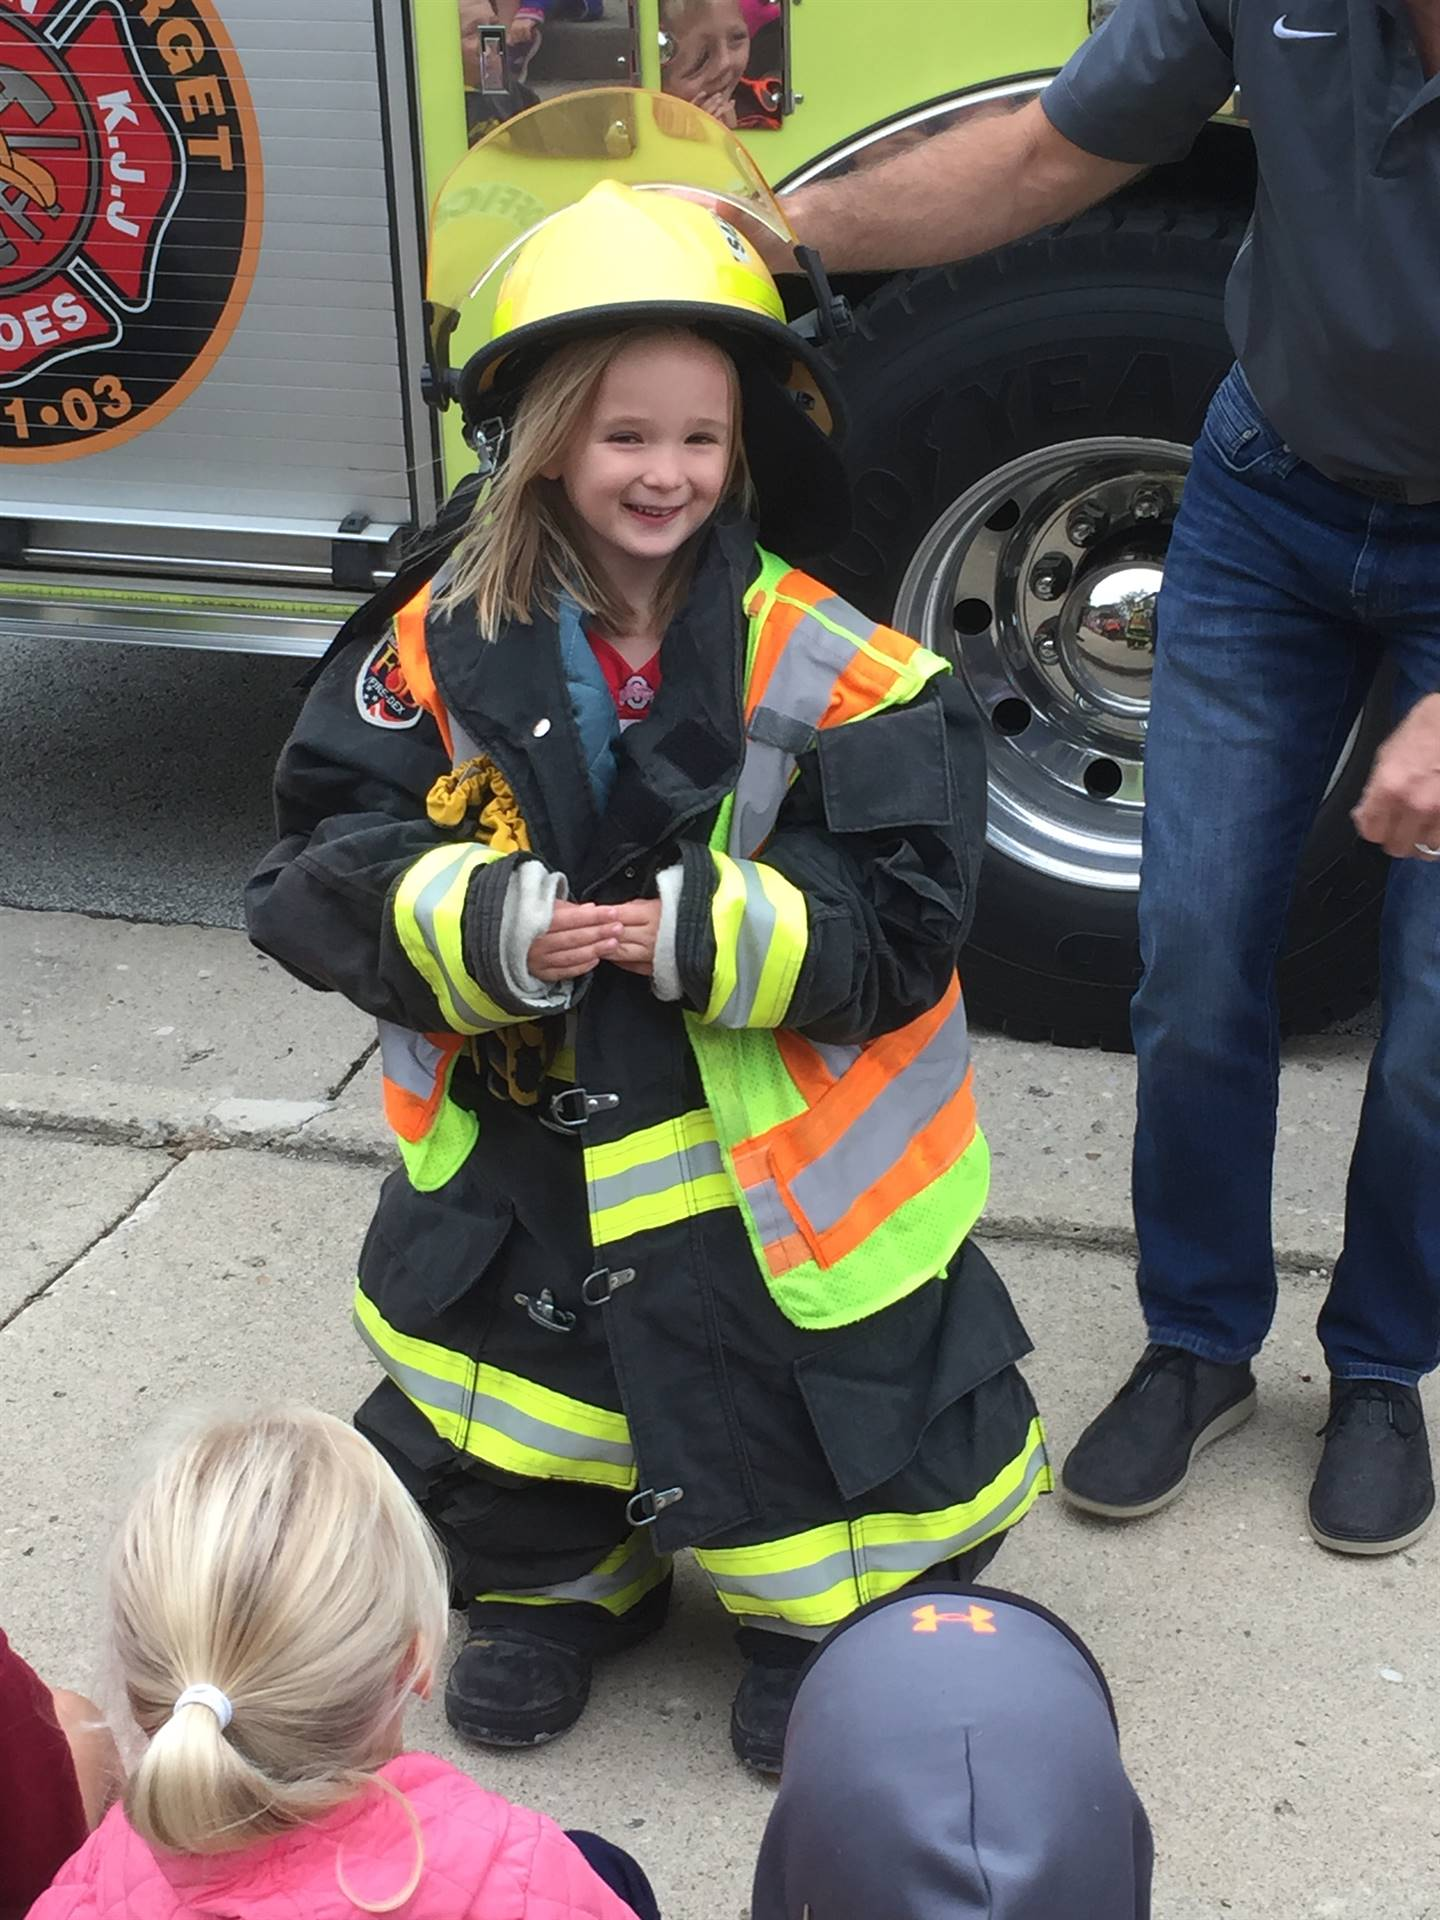 fire safety- fire truck visit!